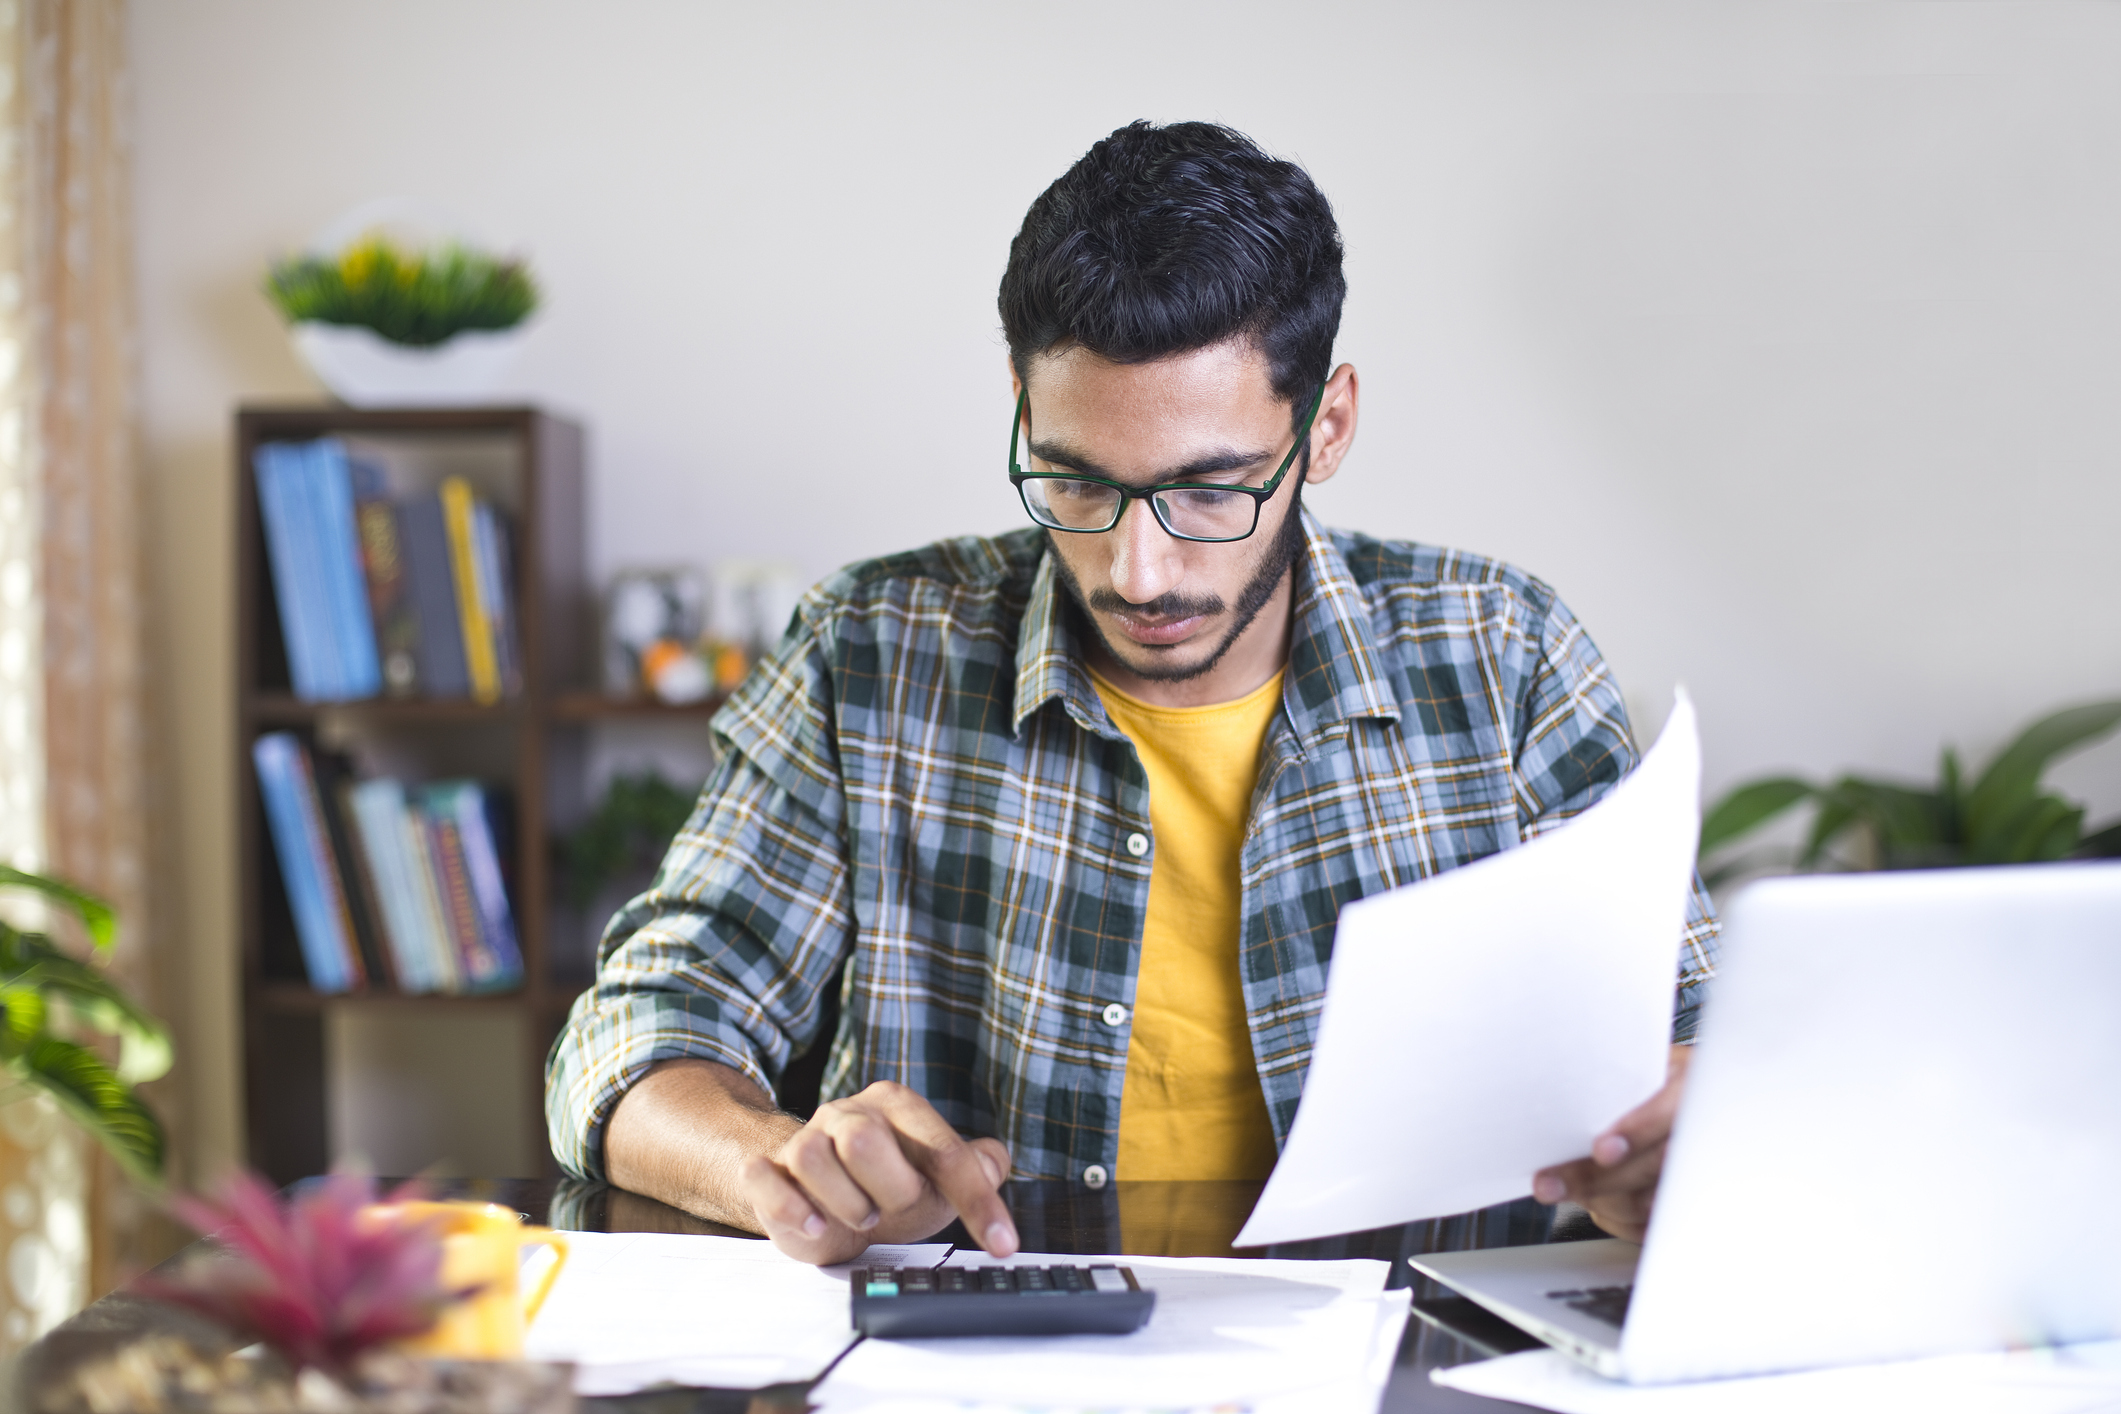 Refinancing your student loans - is it right for you? | dollargeek.